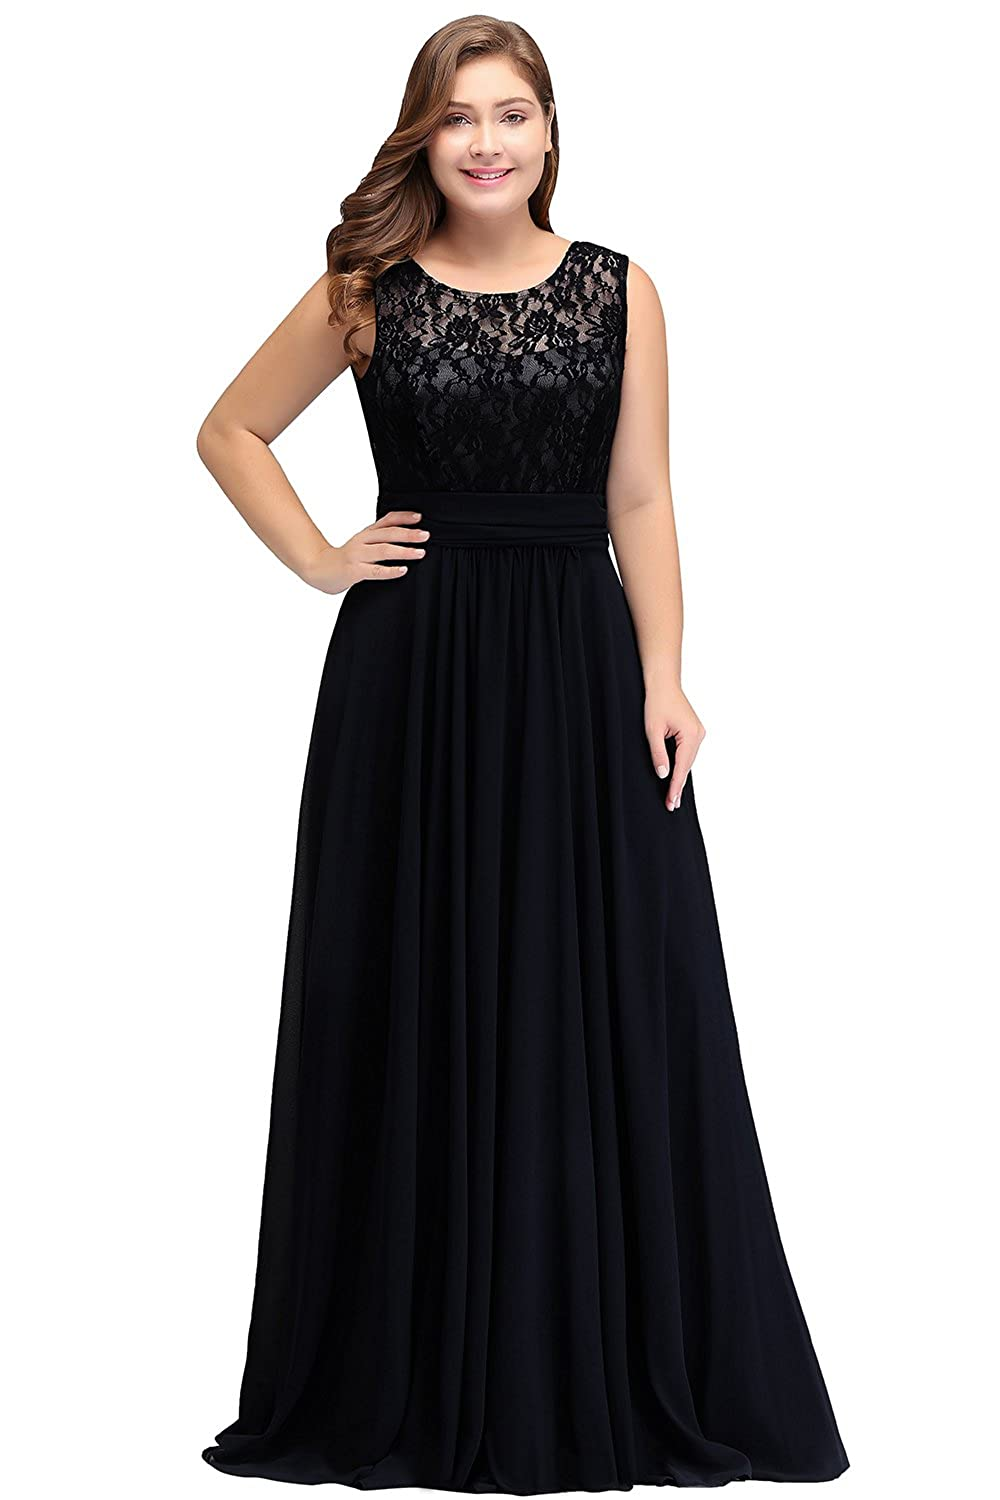 536f833a7134b Babyonline Women Chiffon Long Mother of The Bride Dresses Plus Size Prom  Dresses at Amazon Women's Clothing store: